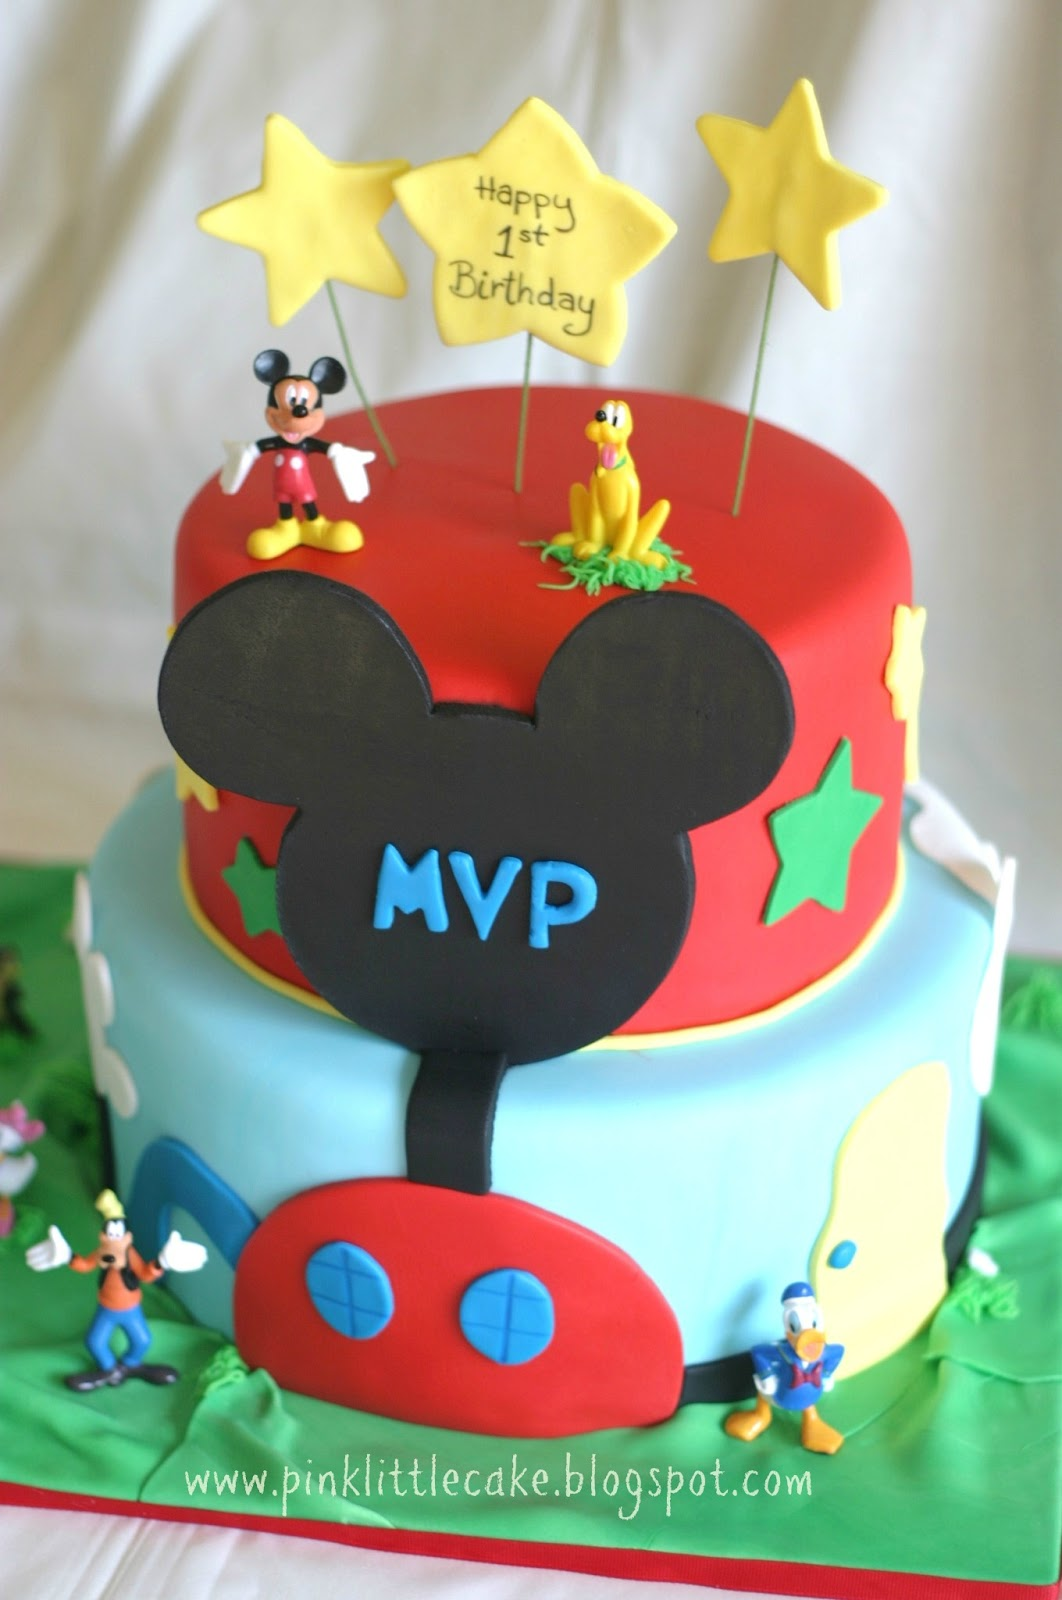 Mickey Mouse Clubhouse Cake Images : Pink Little Cake: Mickey Mouse Clubhouse Cake